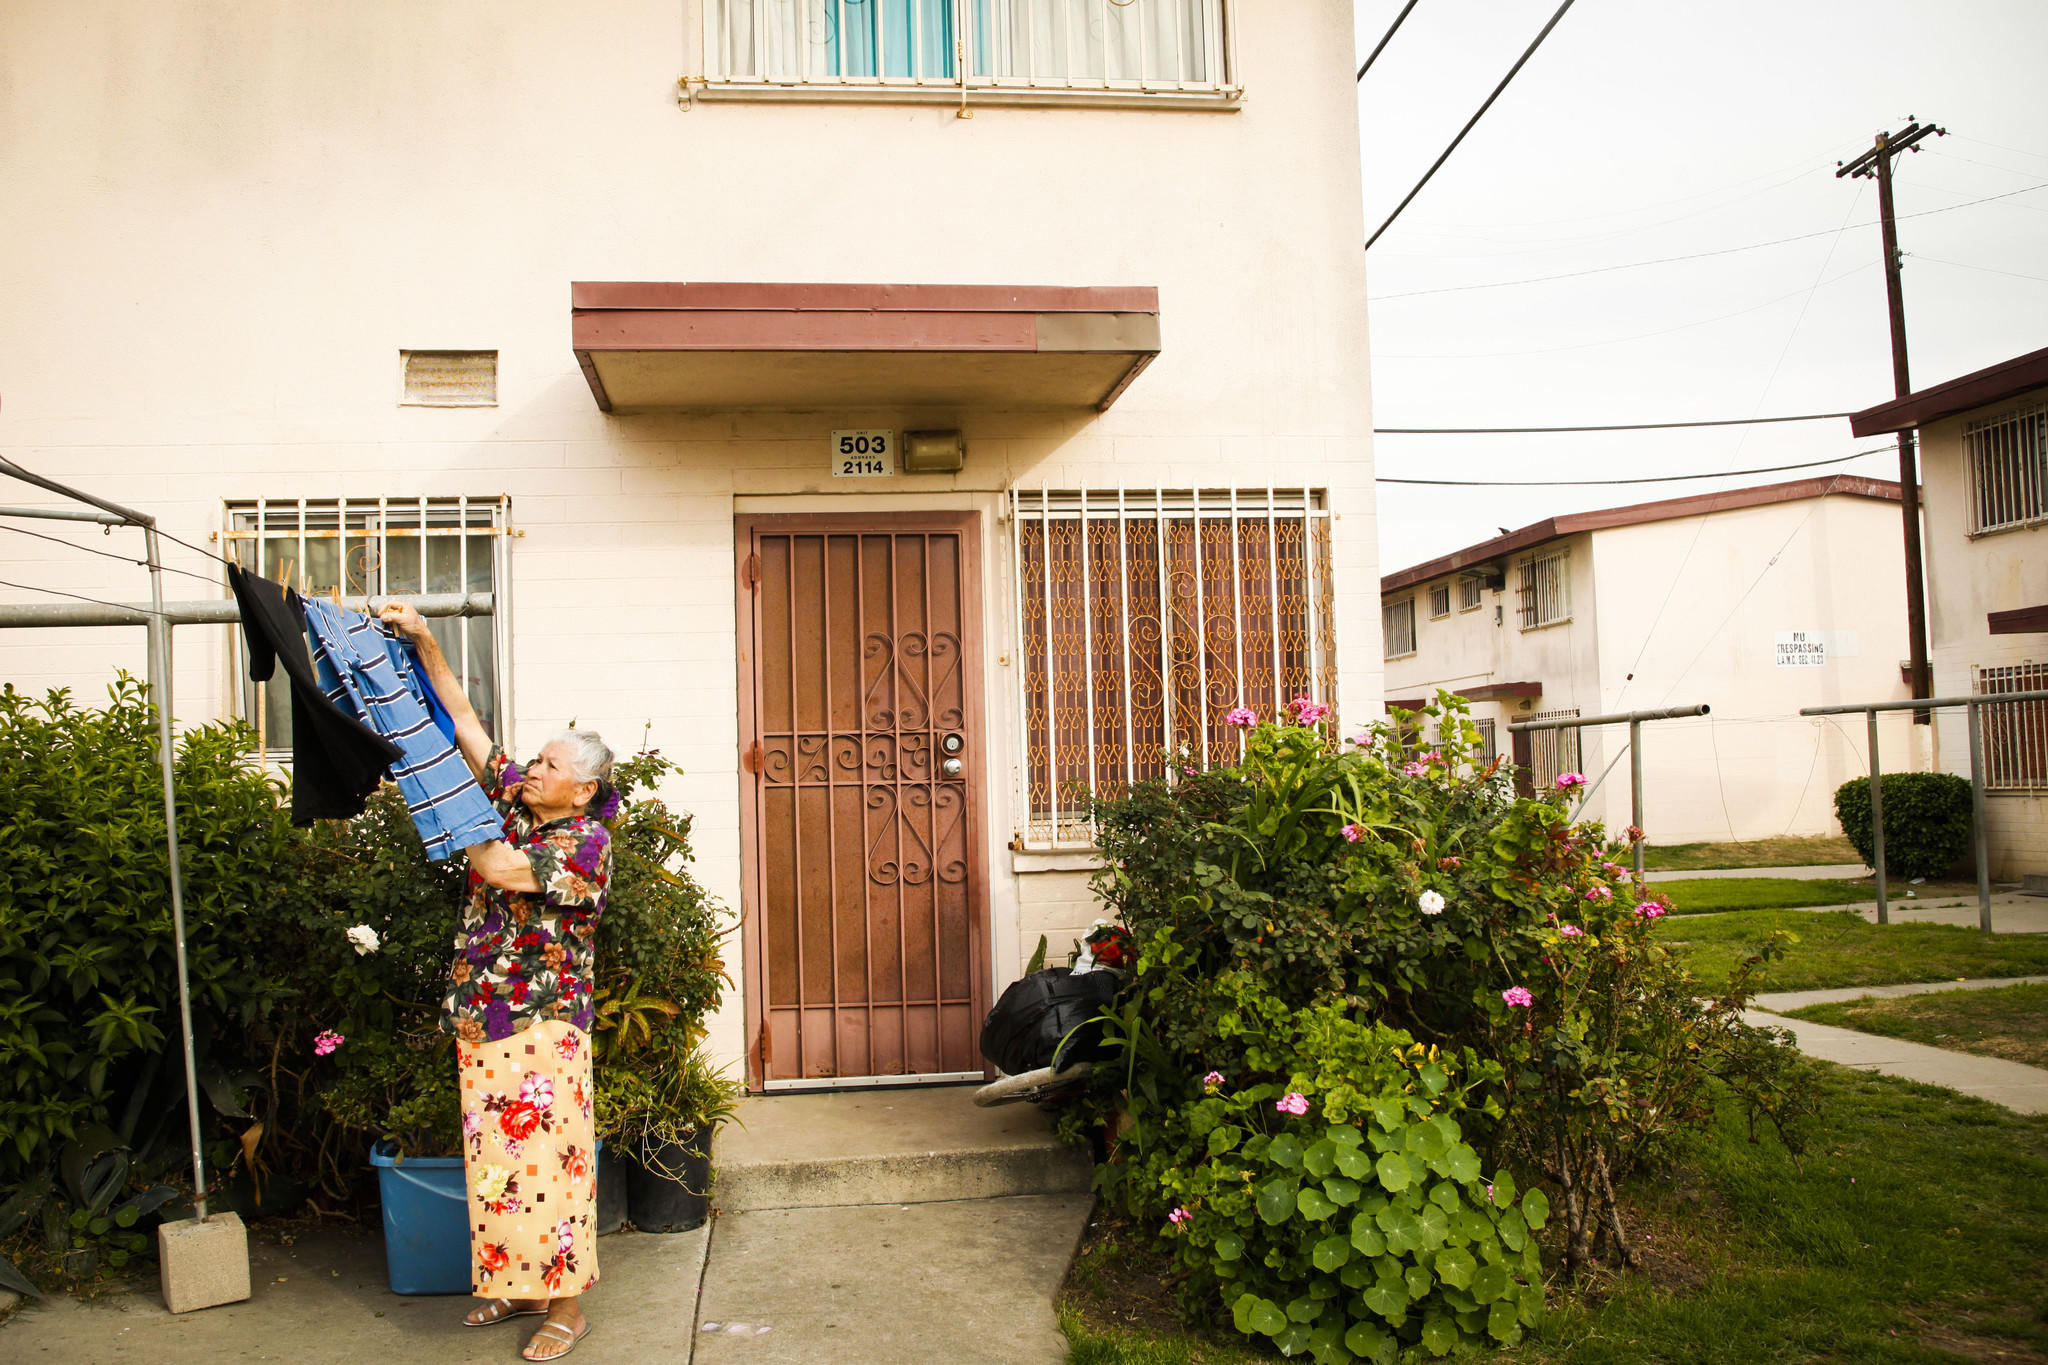 A resident hangs laundry outside of a residence in the Jordan Downs housing project in Watts.